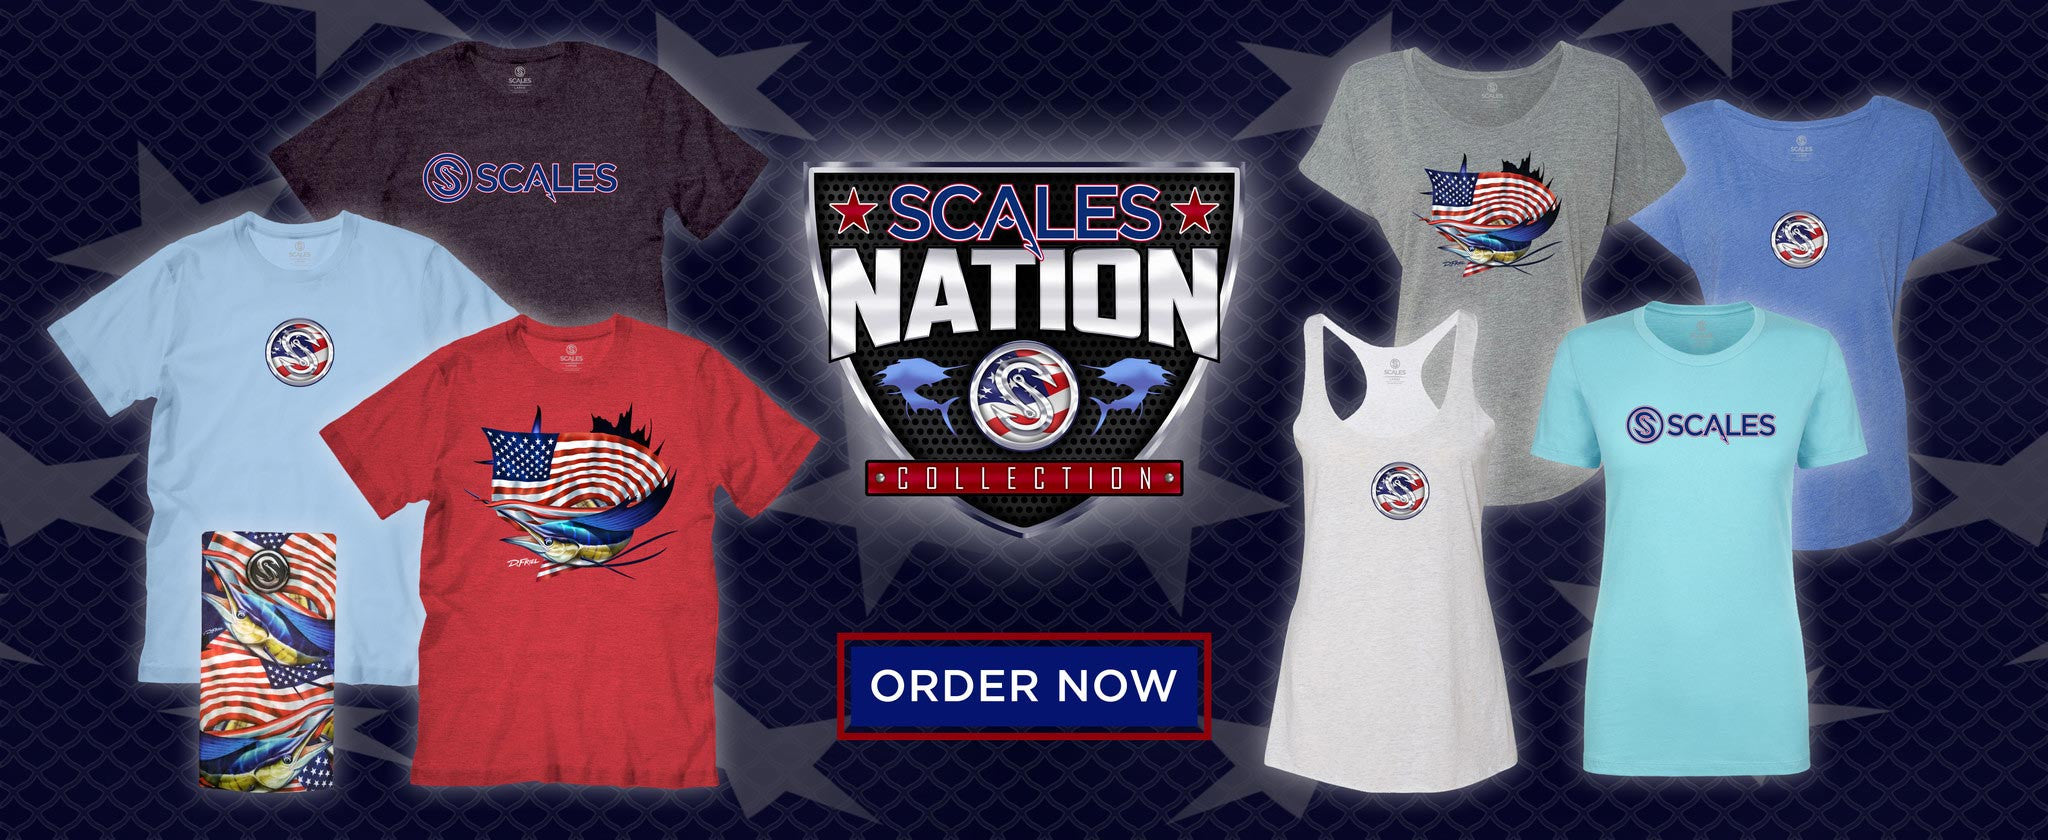 Scales Gear Nation Collection